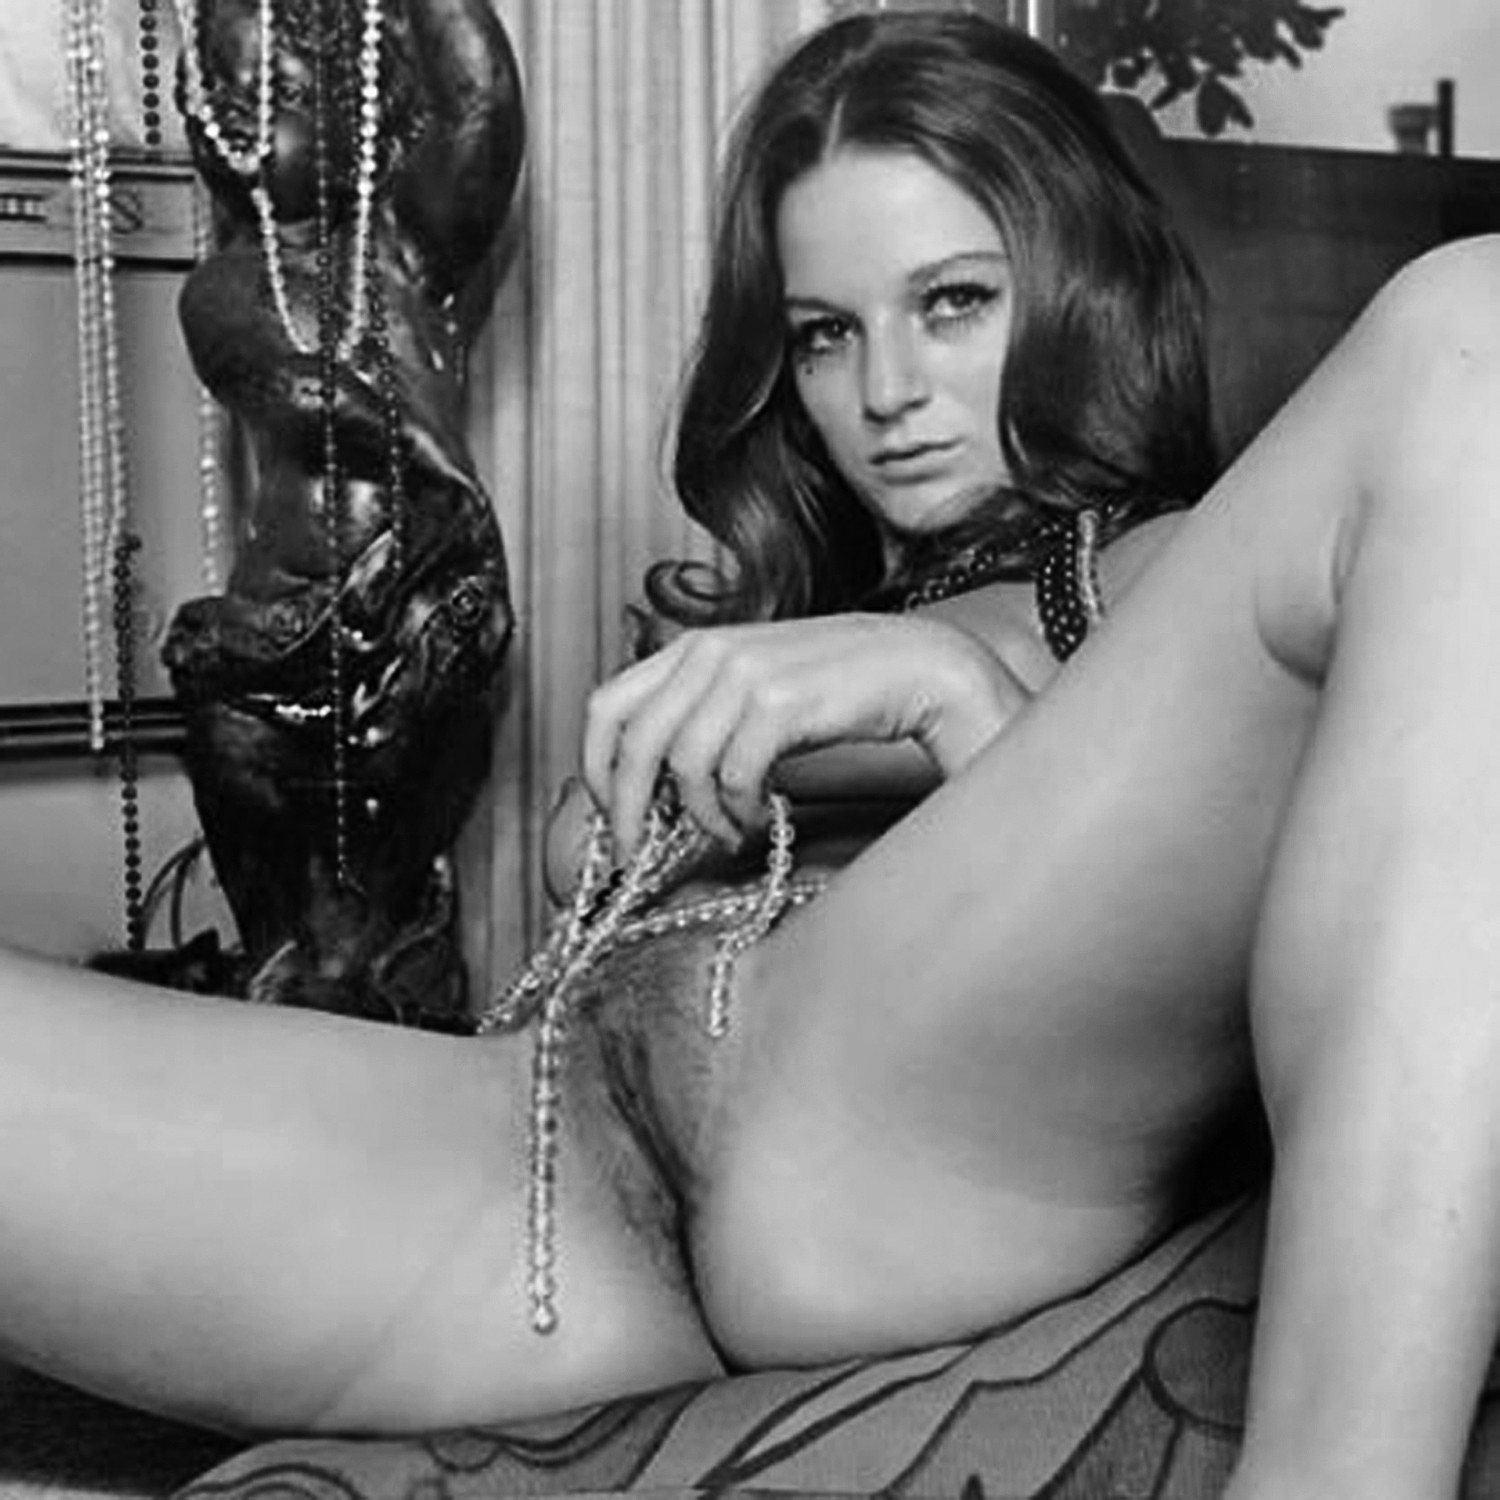 Vintage female orgasm classics collection